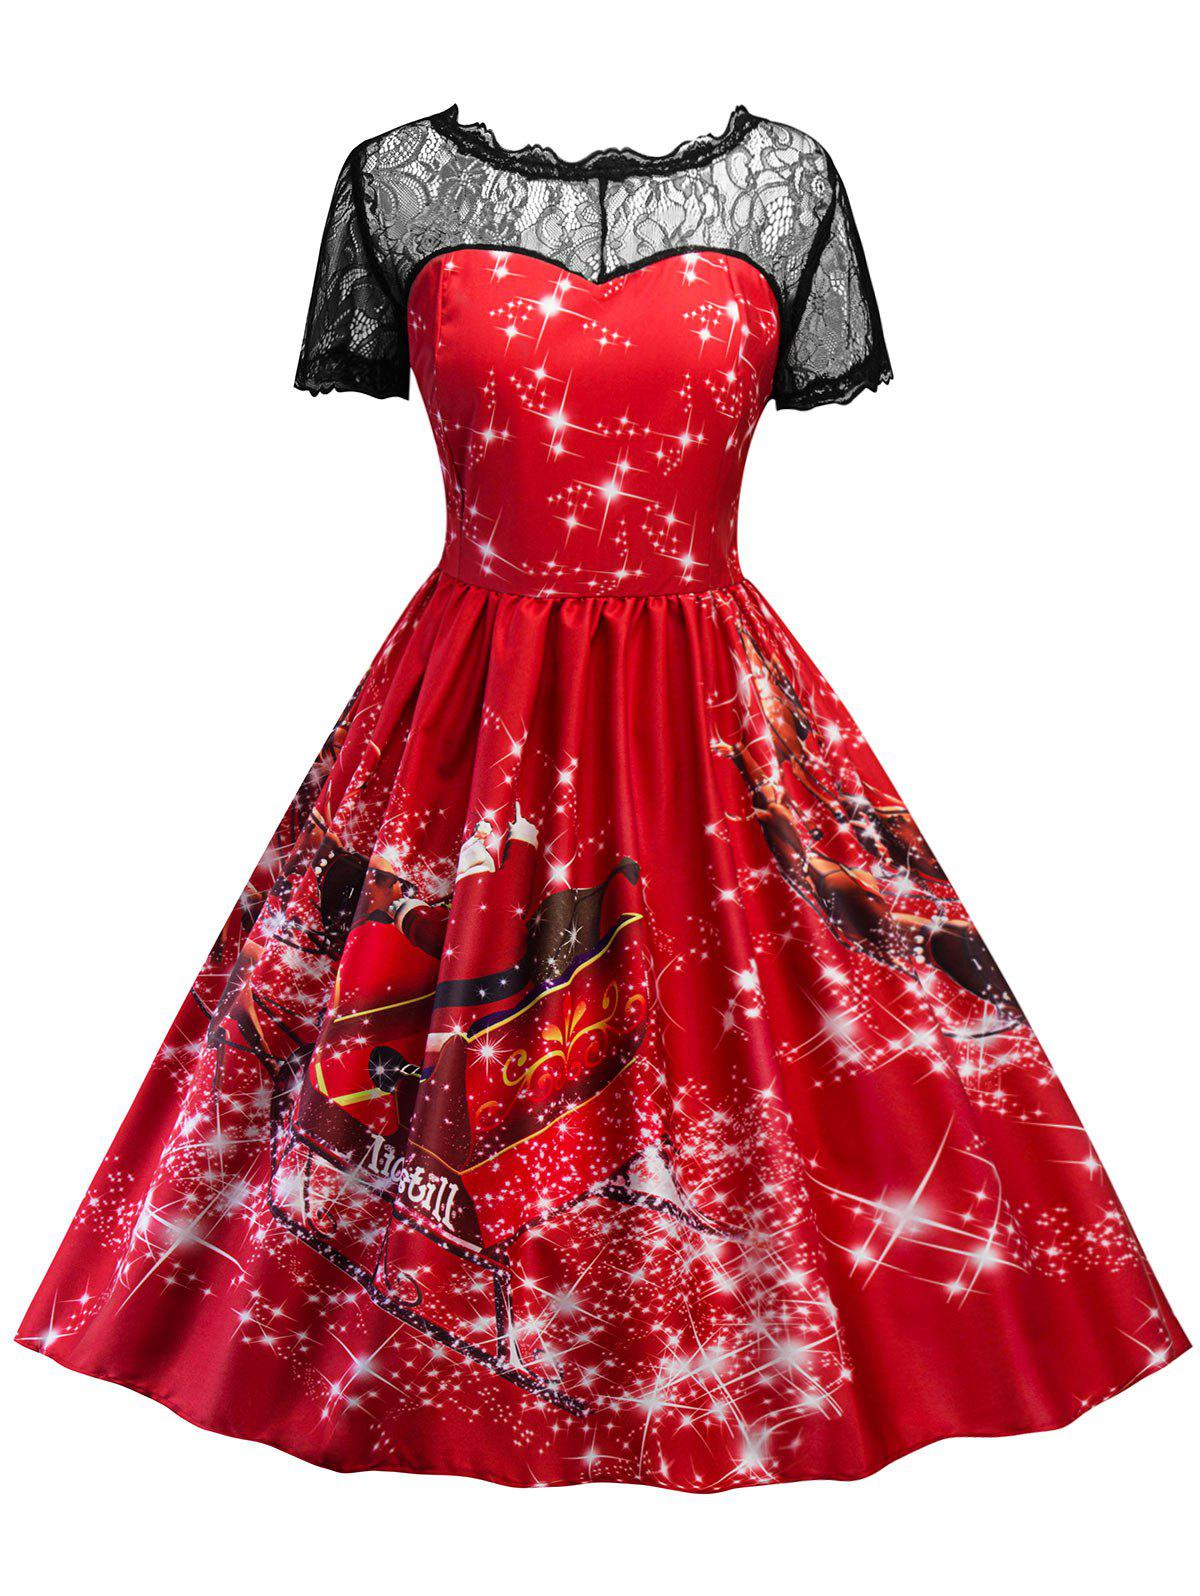 2018 Vintage Printed Lace Insert Christmas Pin Up Dress